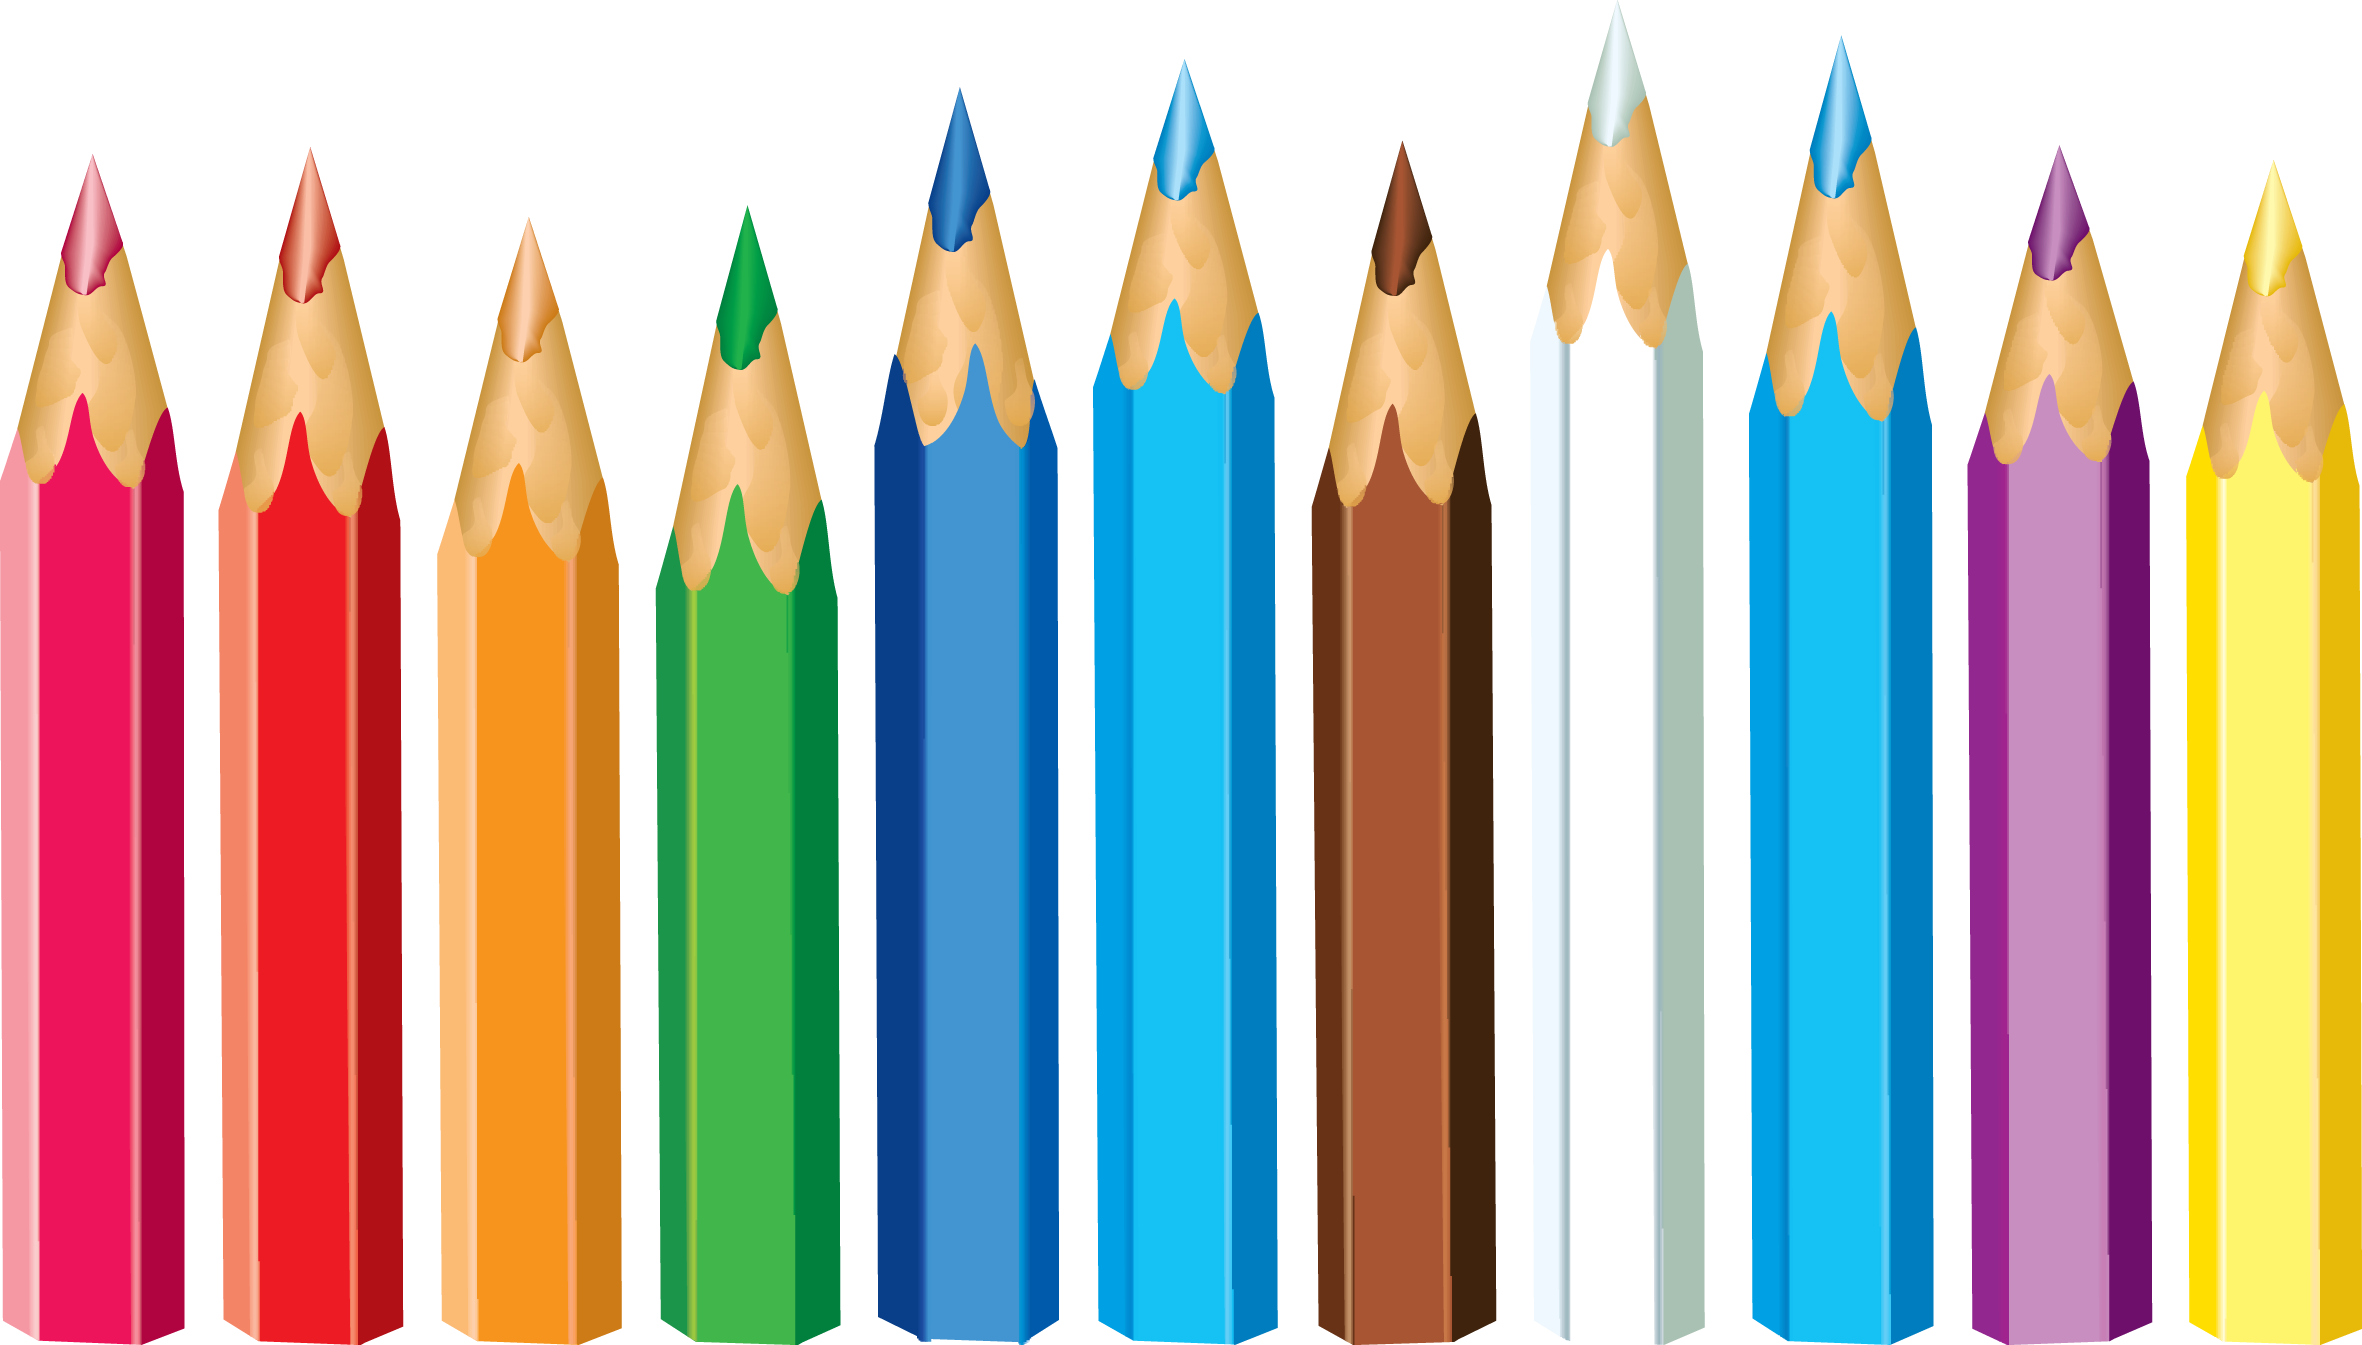 Pencil PNG image - Pencil PNG